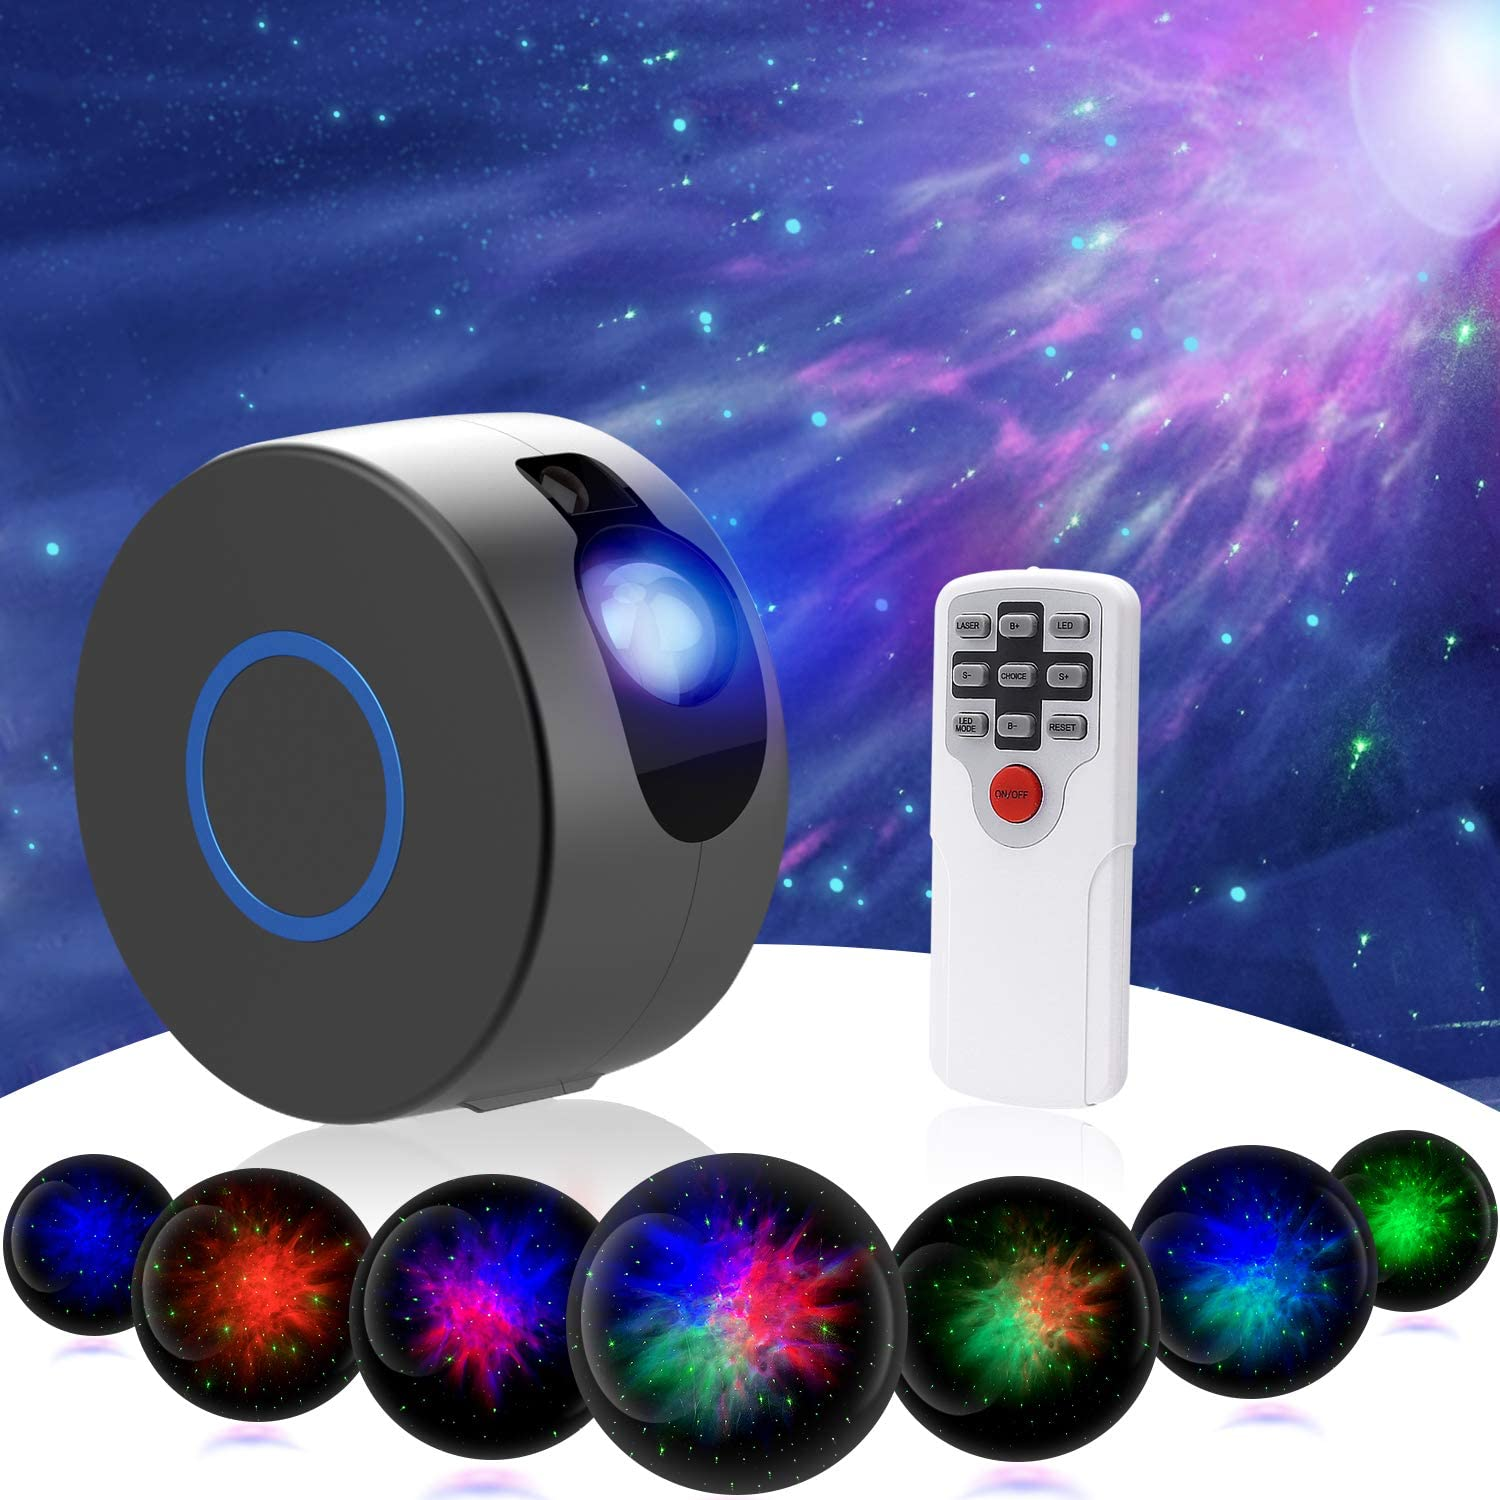 Star Night Light Projector, Upgrade 15 Lighting Modes 7 Lighting Effects Sky Galaxy Projector LED Nebula Cloud Light with Remote Control for Party Home Theater, Children Kids Baby Adults Bedroom-Grey